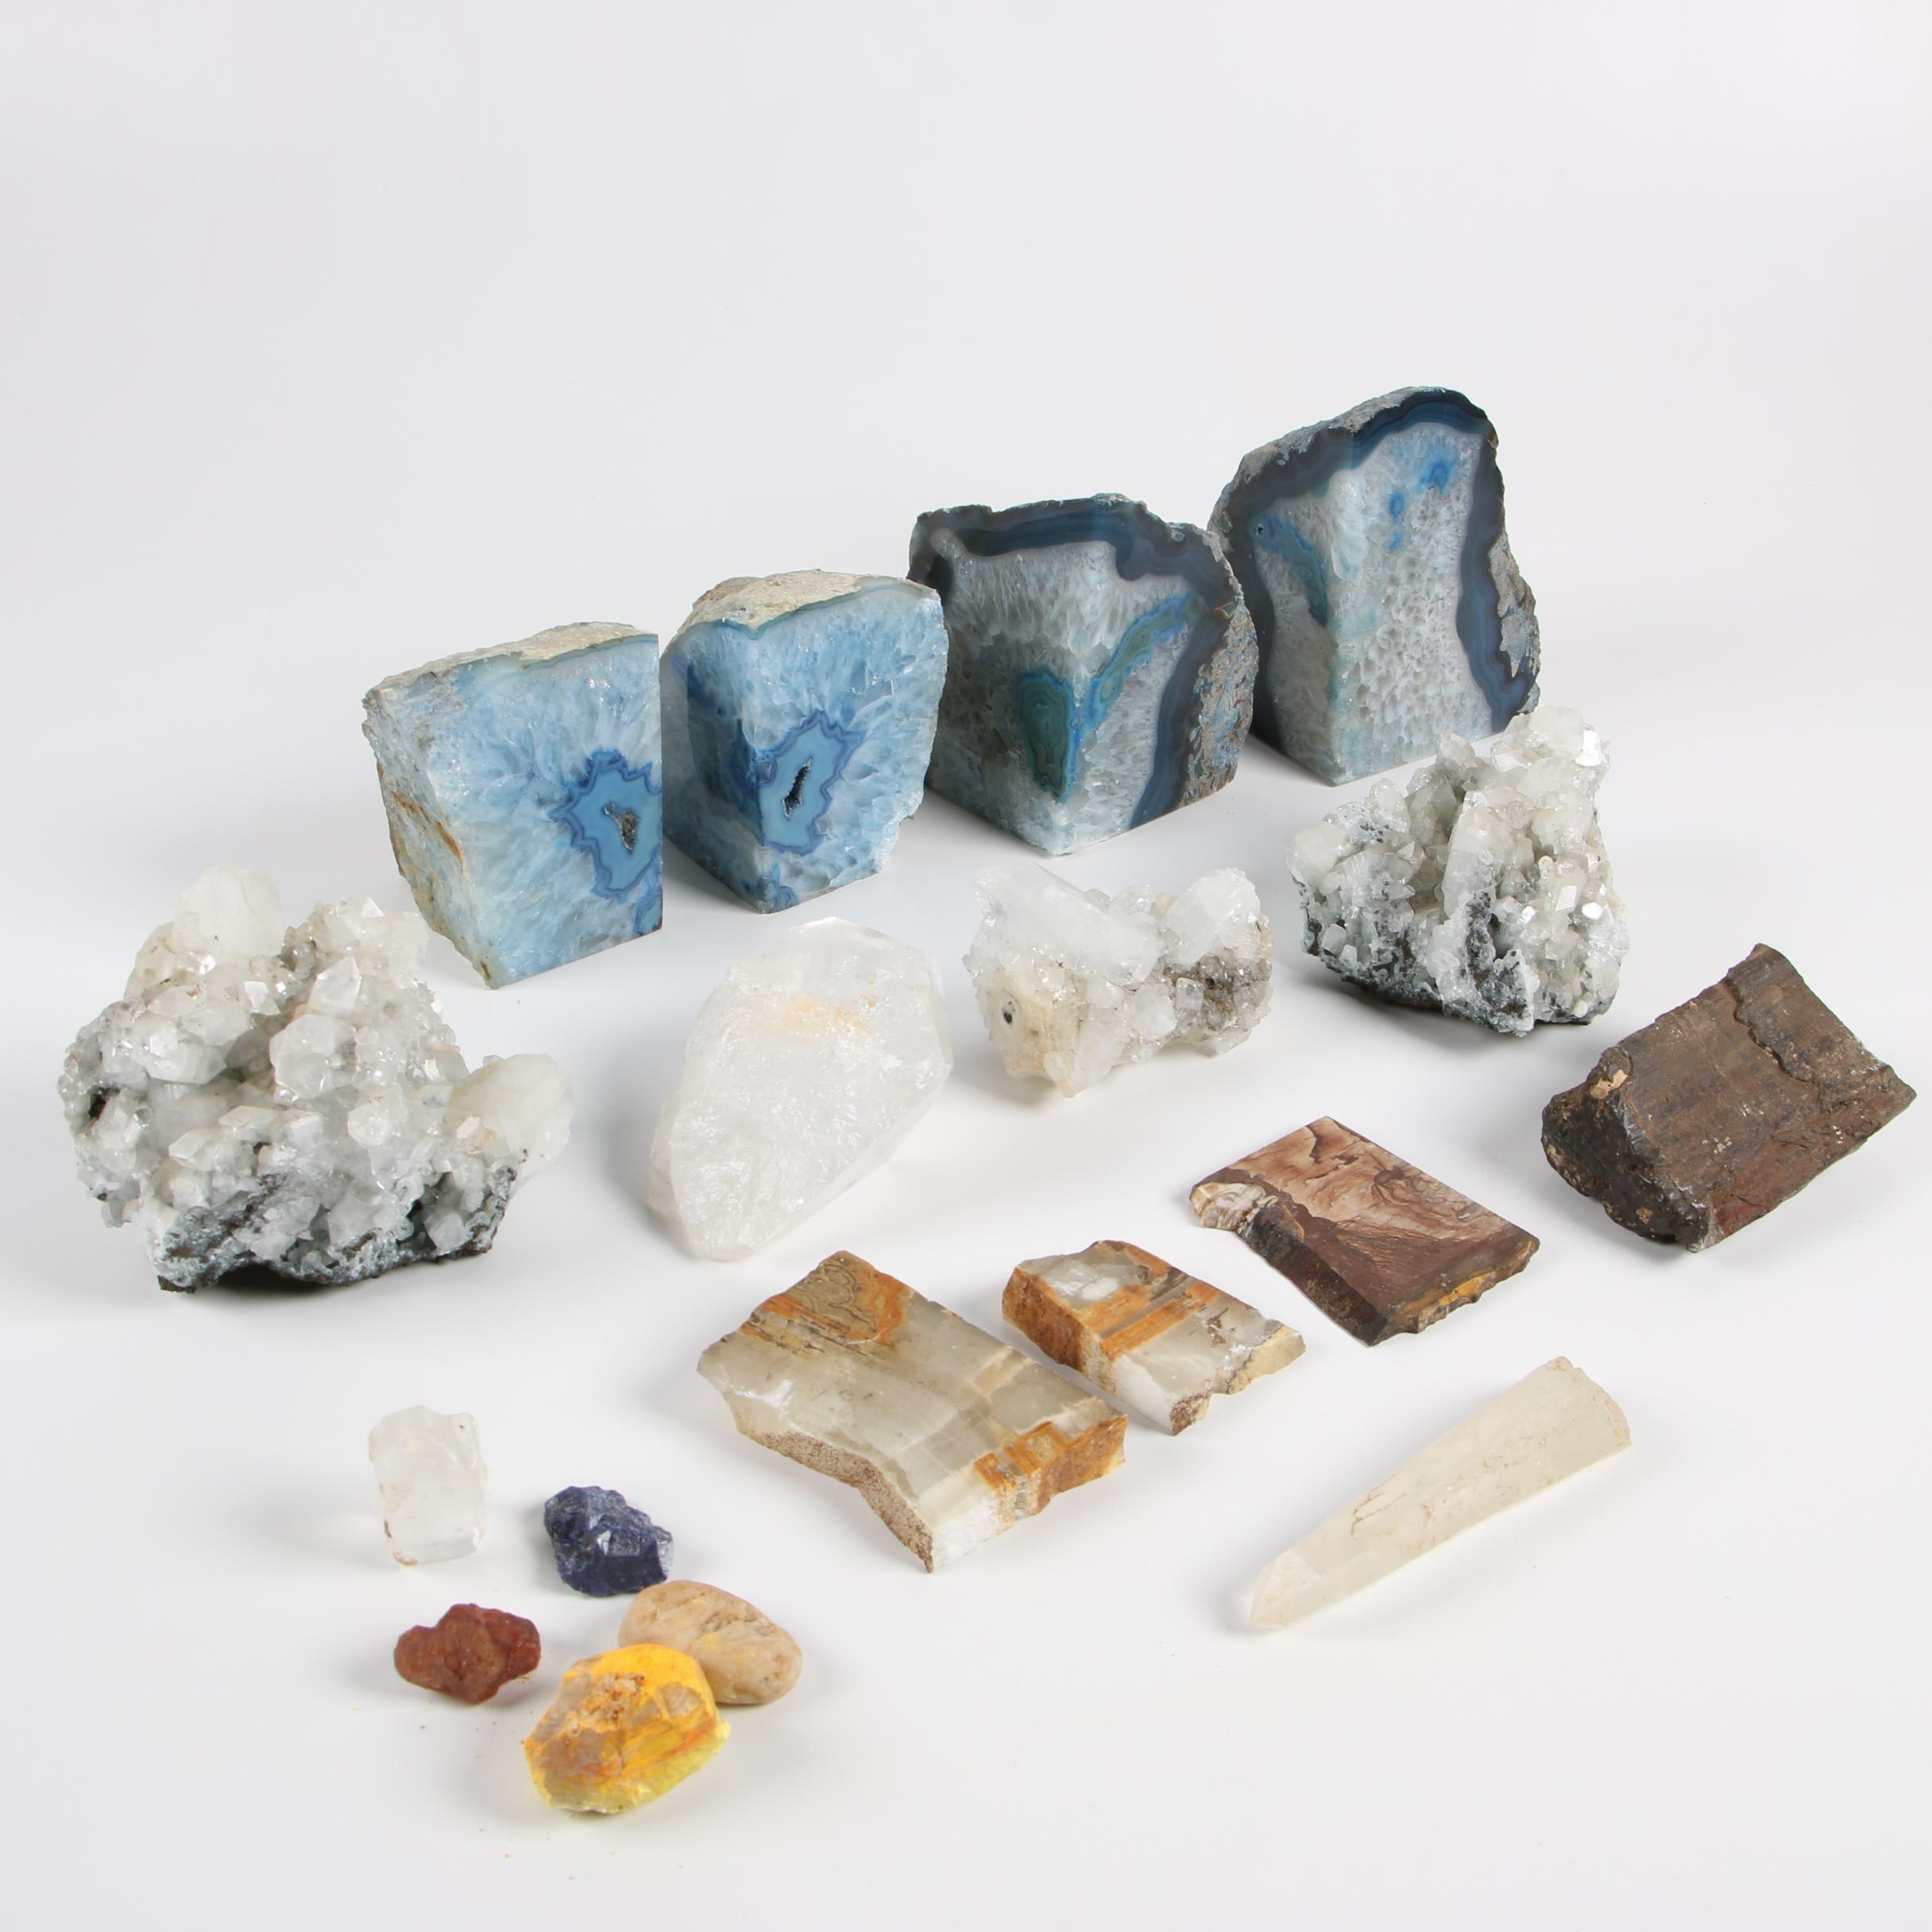 Brazilian Polished Dyed Agate Bookends and Other Mineral Specimens